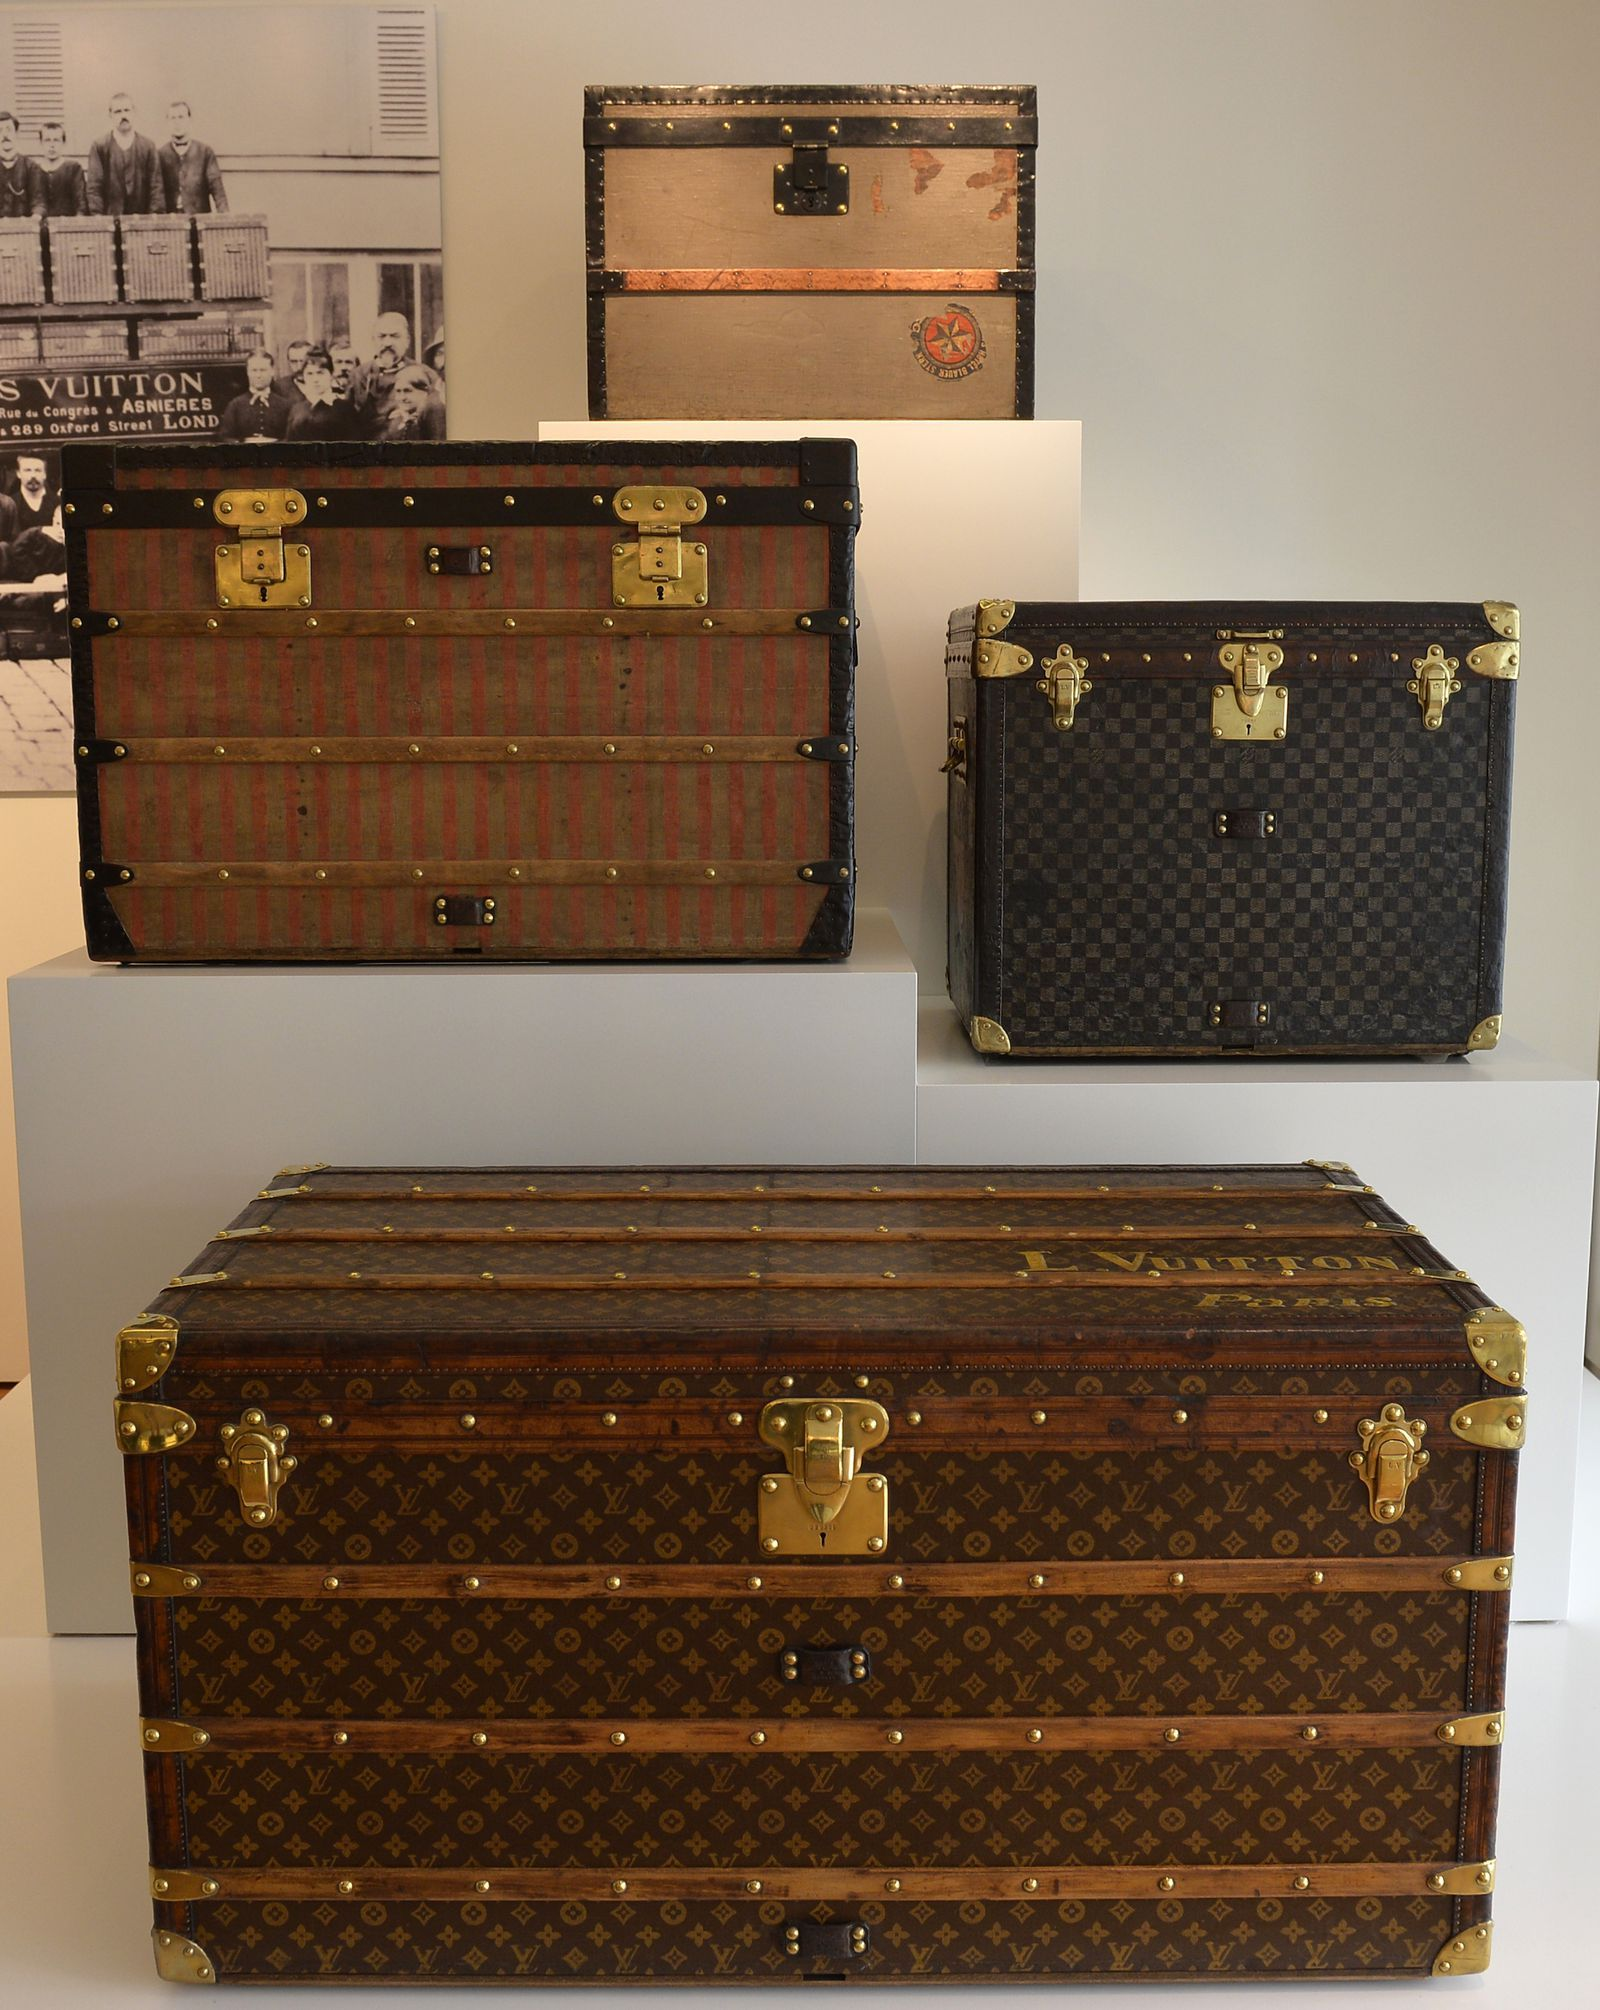 25 Items That You Thought Were Trash But Could Be Worth A Ton Of Money Louis Vuitton Trunk Selling Antiques Vintage Trunks